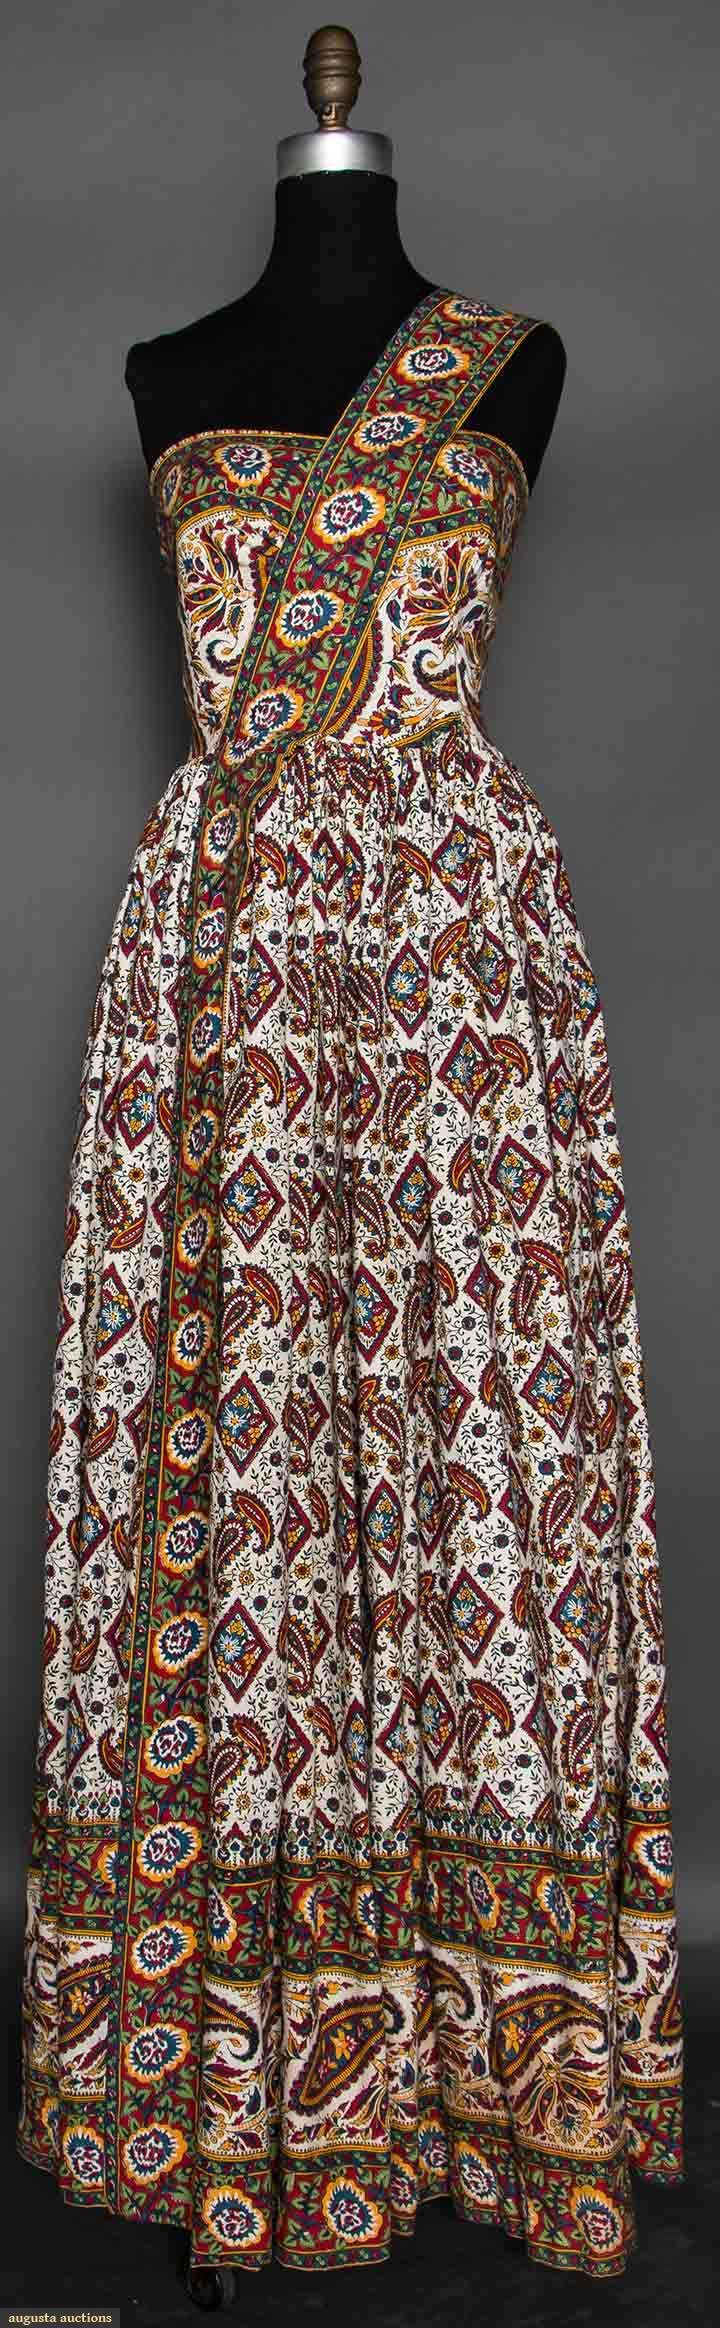 EAST INDIAN PRINT COTTON DRESS, 1950s White cotton w/ yellow, red, green & blue print, single wide shoulder strap, dirndl skirt